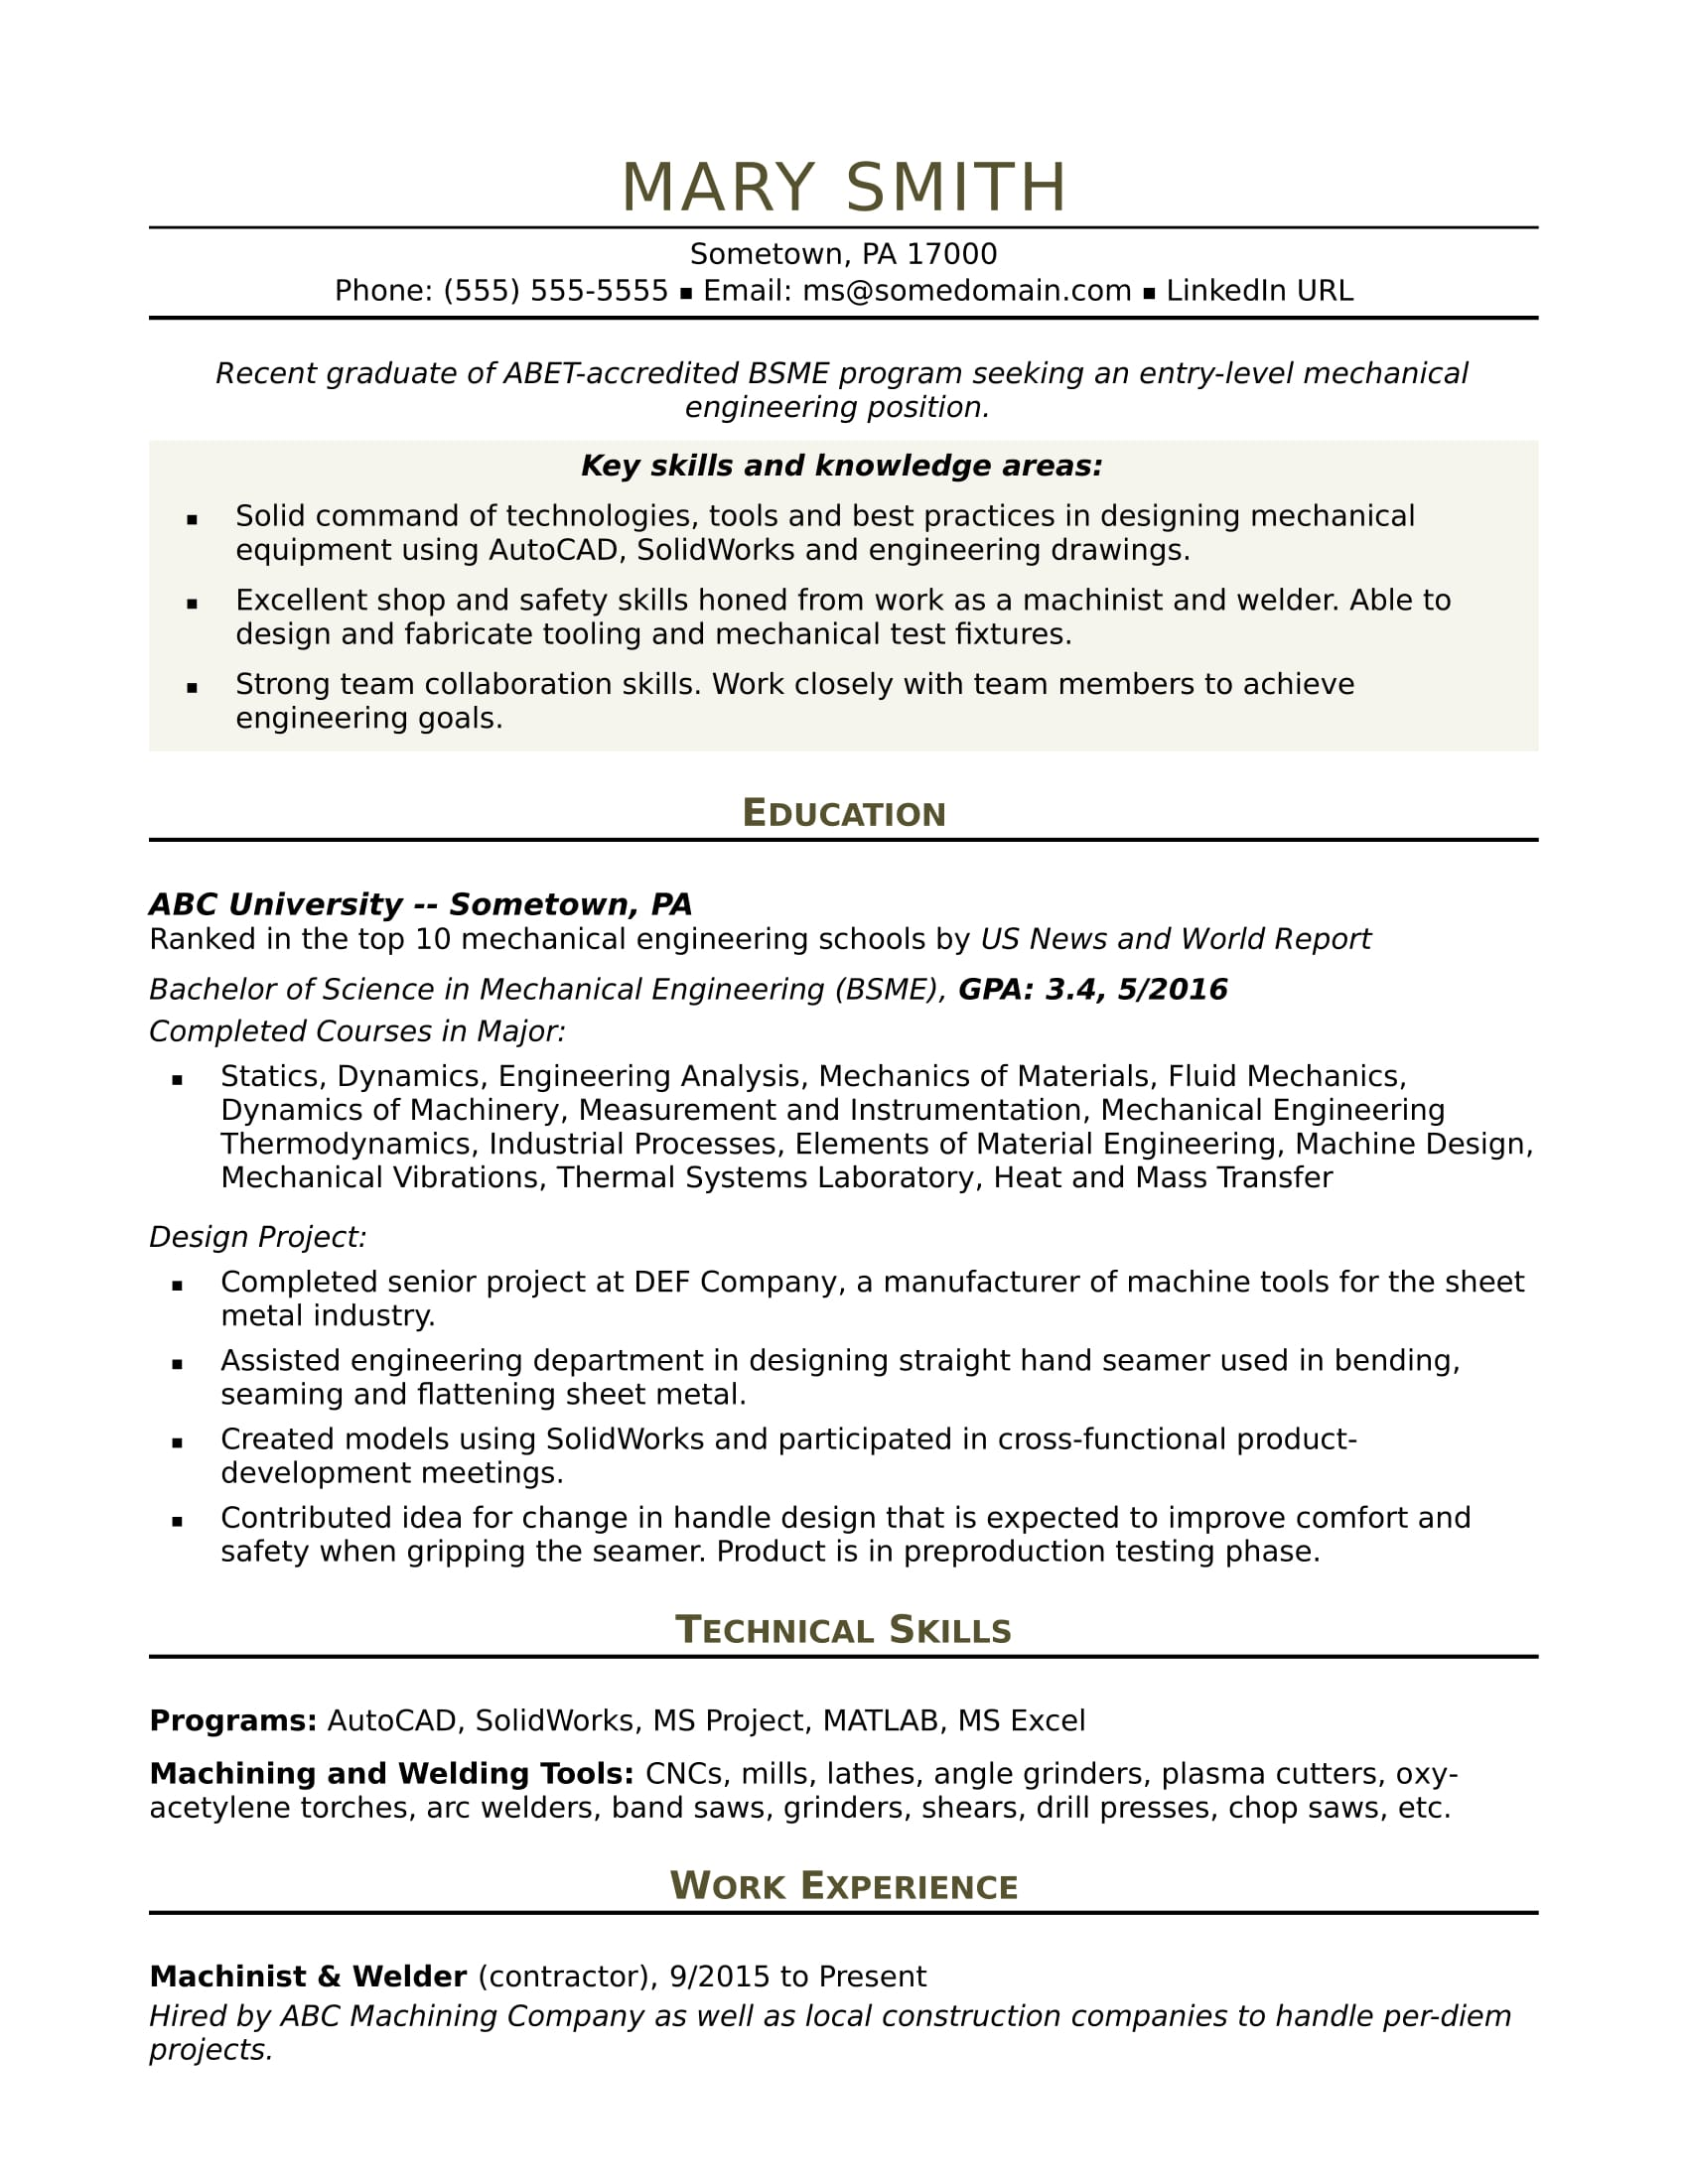 Sample Resume For An Entry Level Mechanical Engineer  Resume Template Engineering